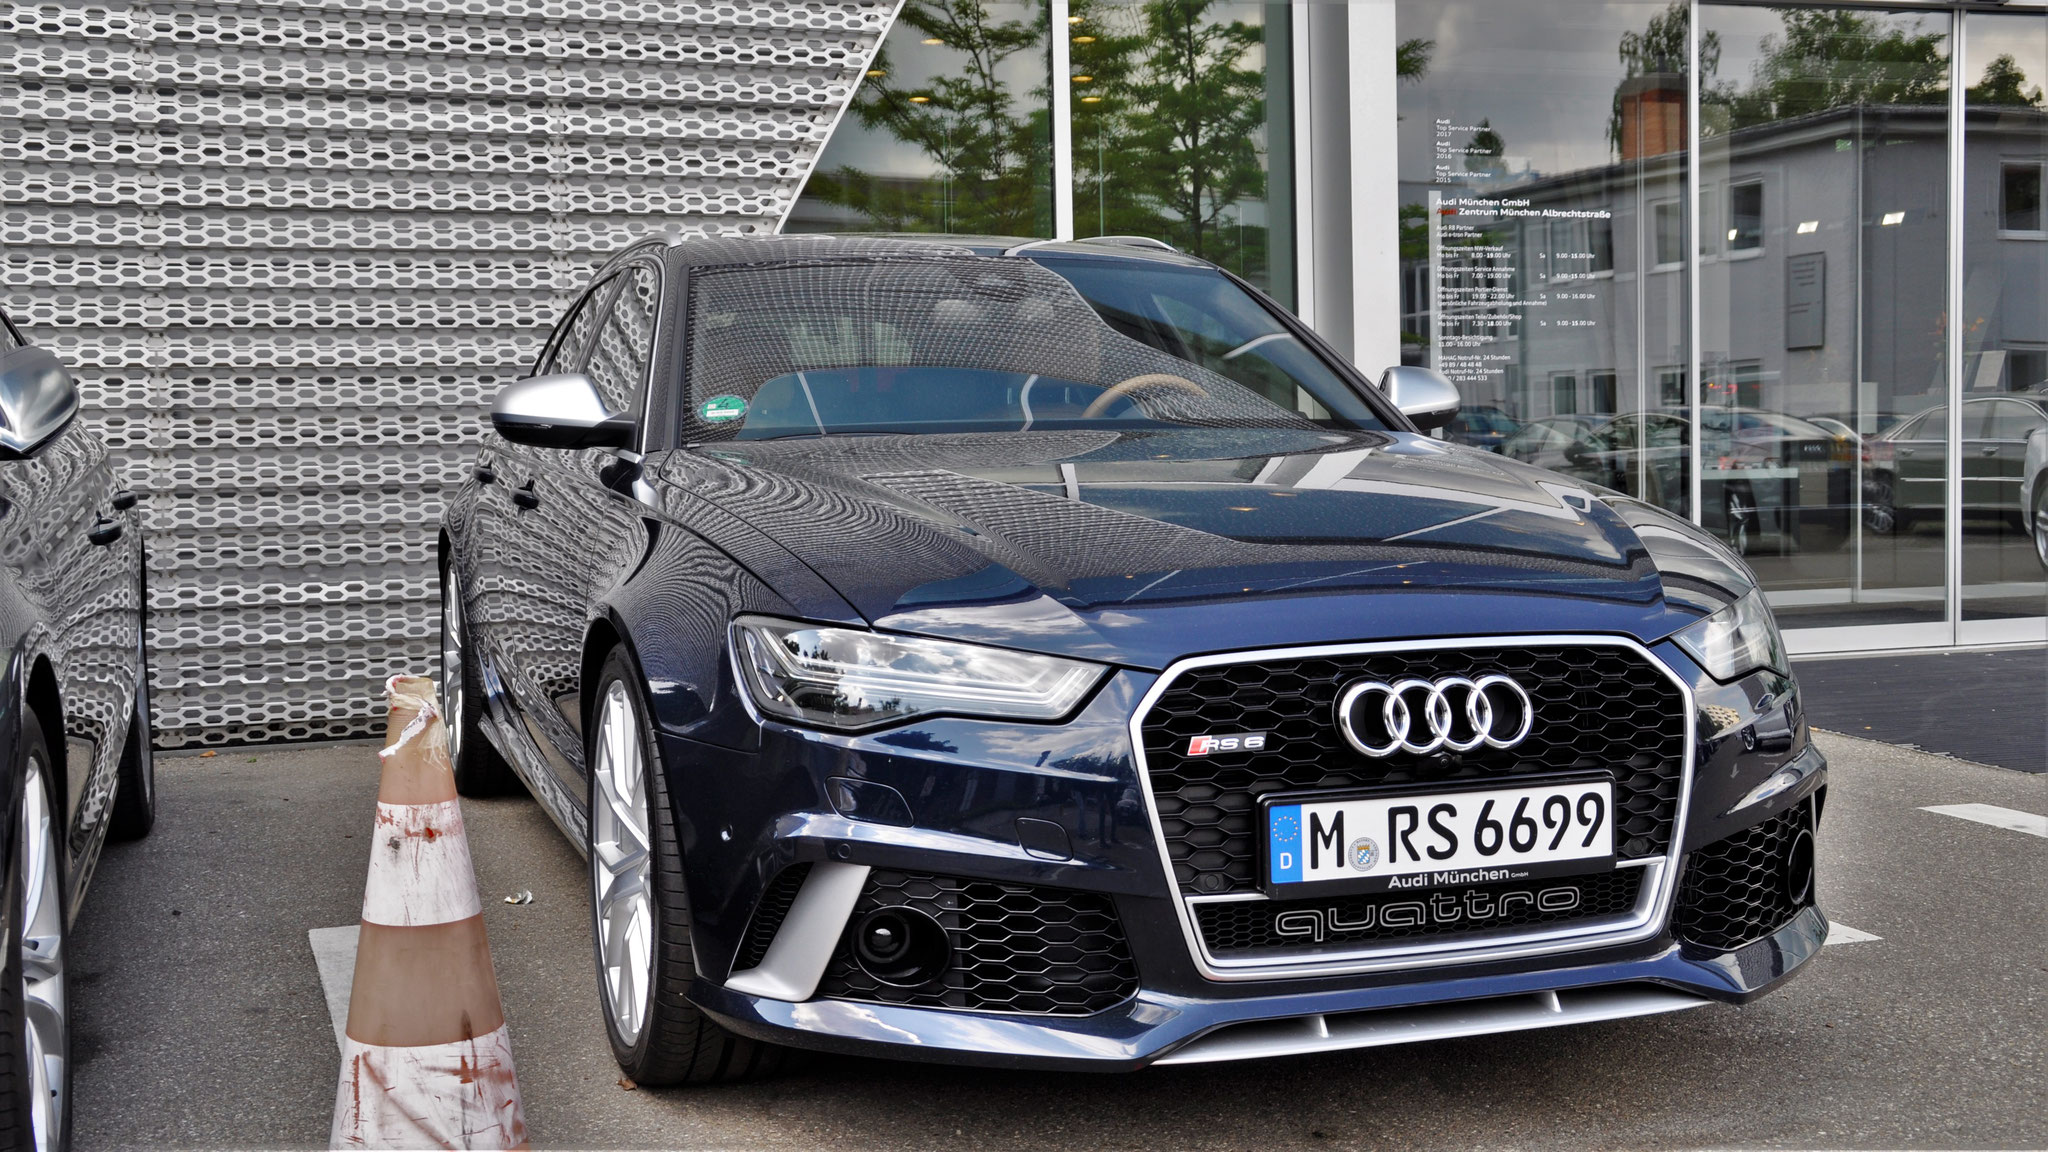 Audi RS6 - M-RS-6699